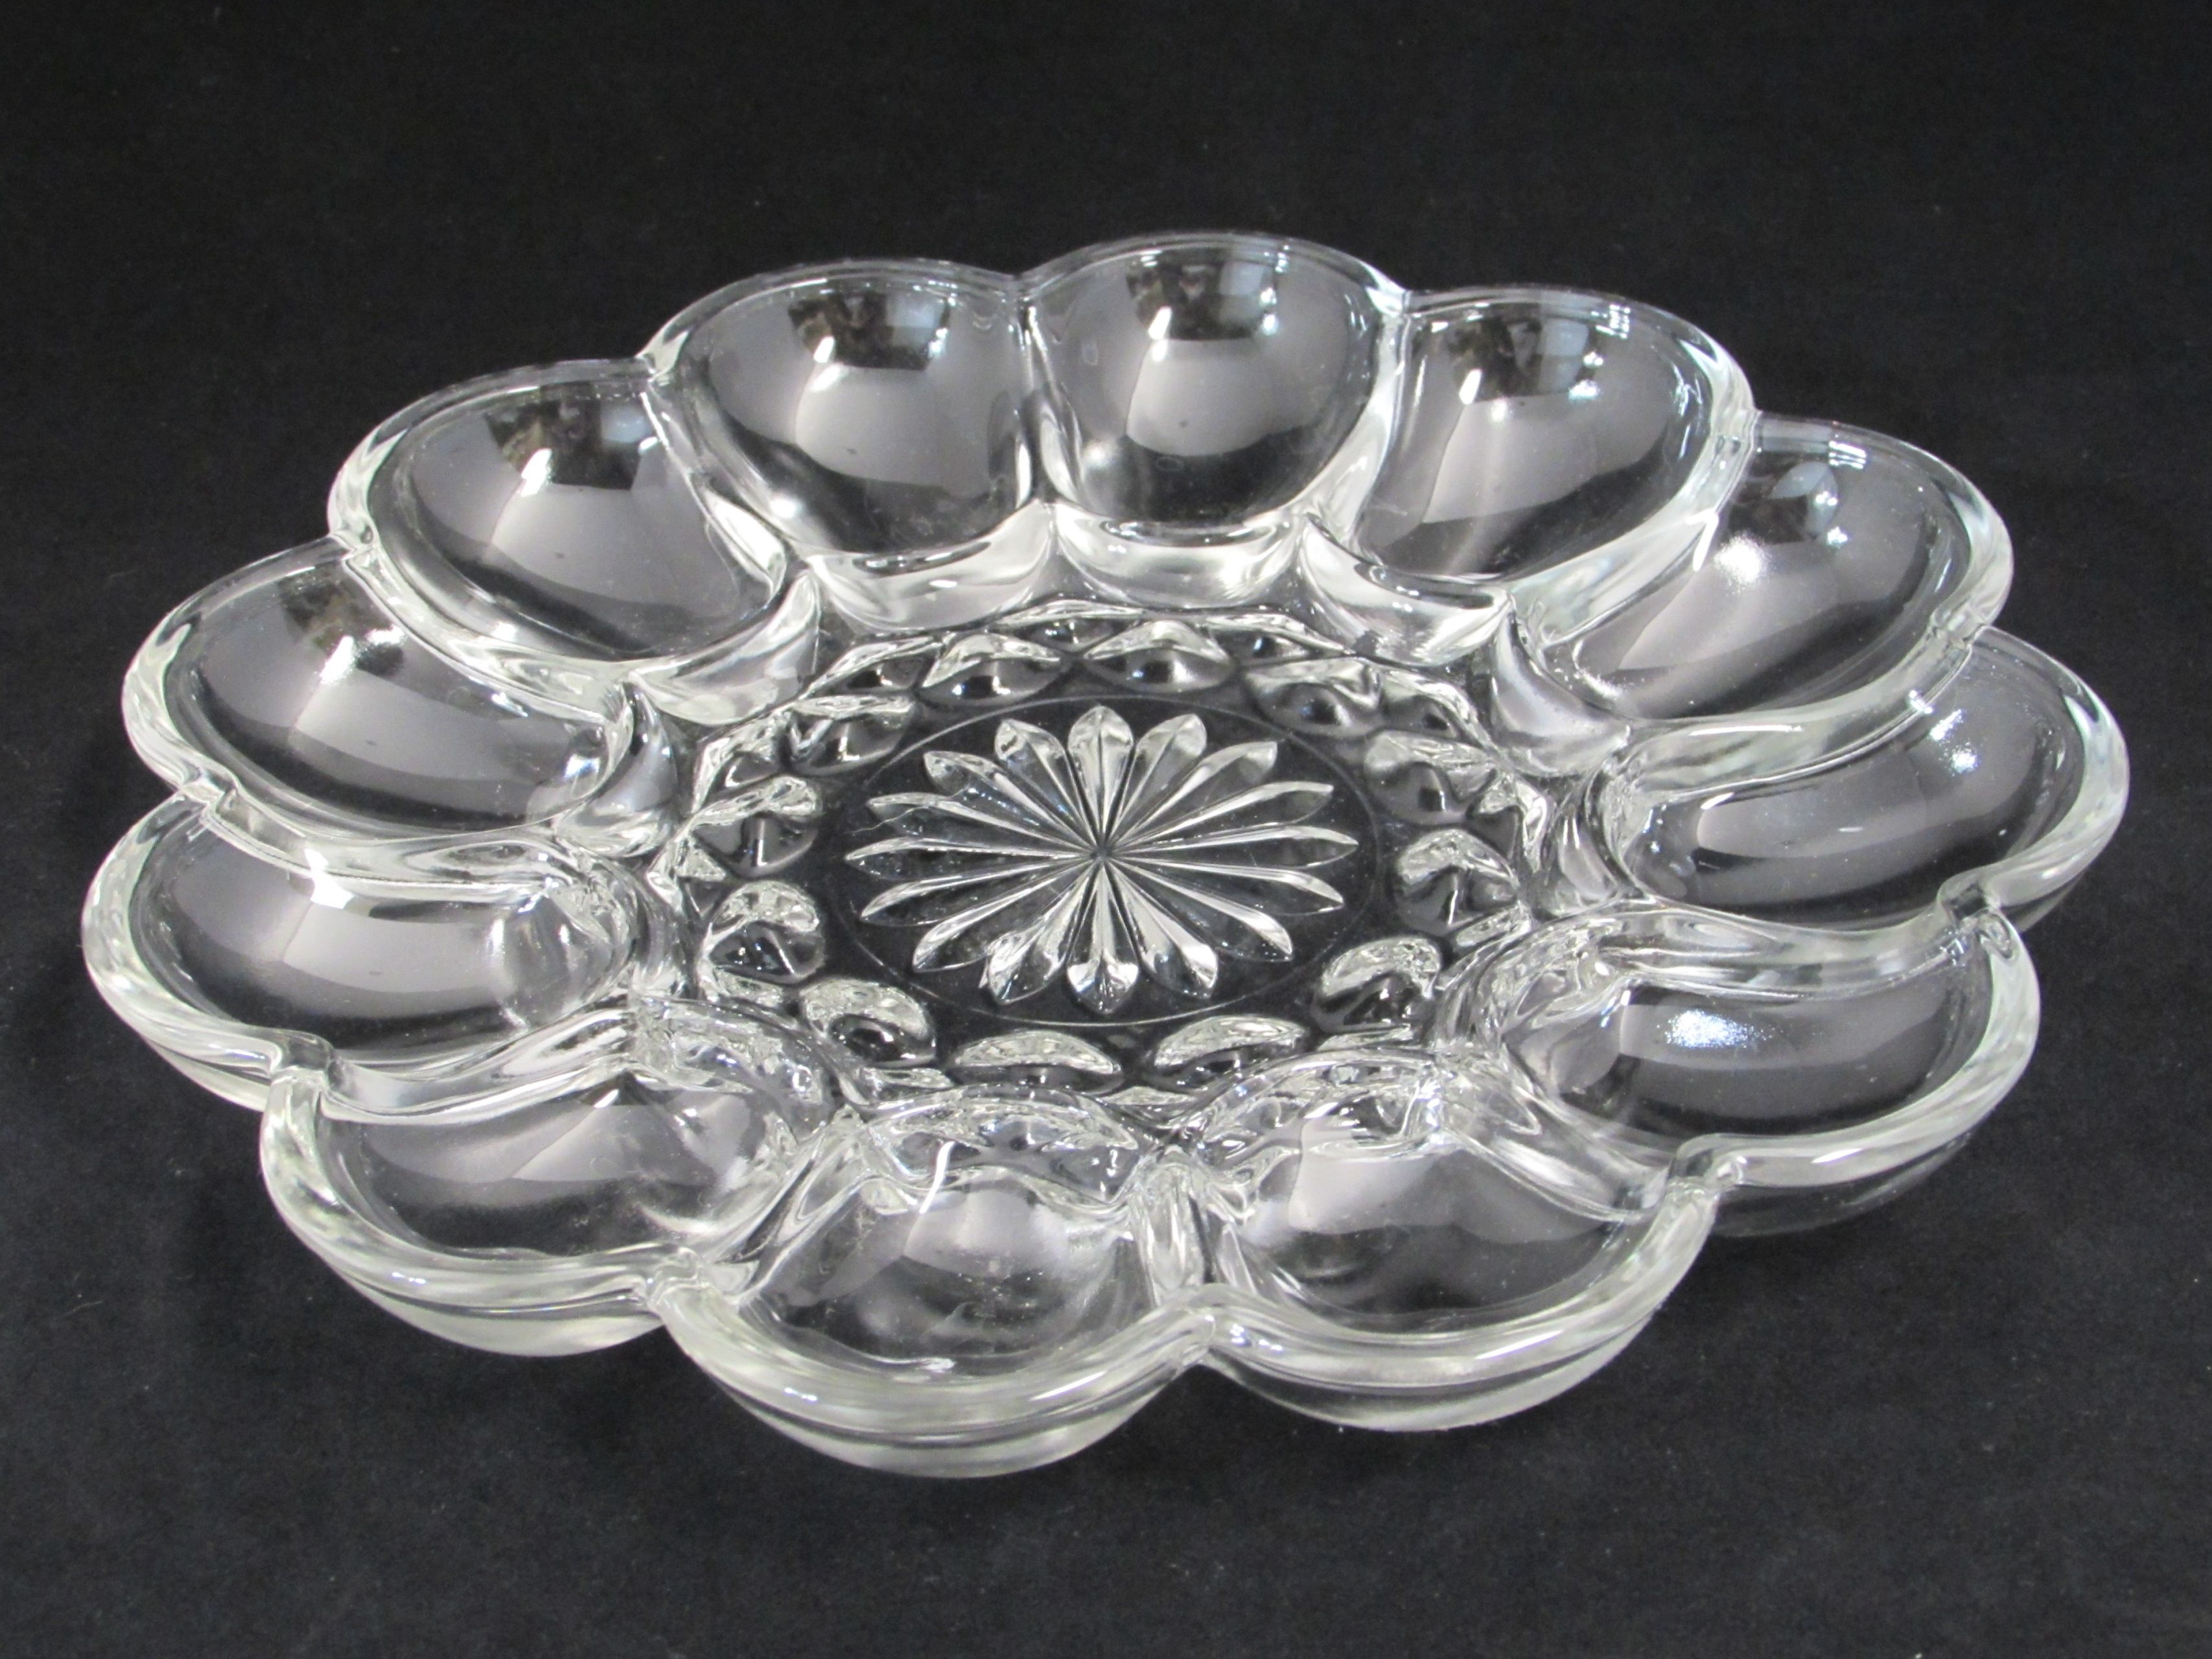 Anchor Hocking Fairfield Egg Plate Clear Glass Deviled Egg Tray Vintage Glassware Antique Glassware Glass